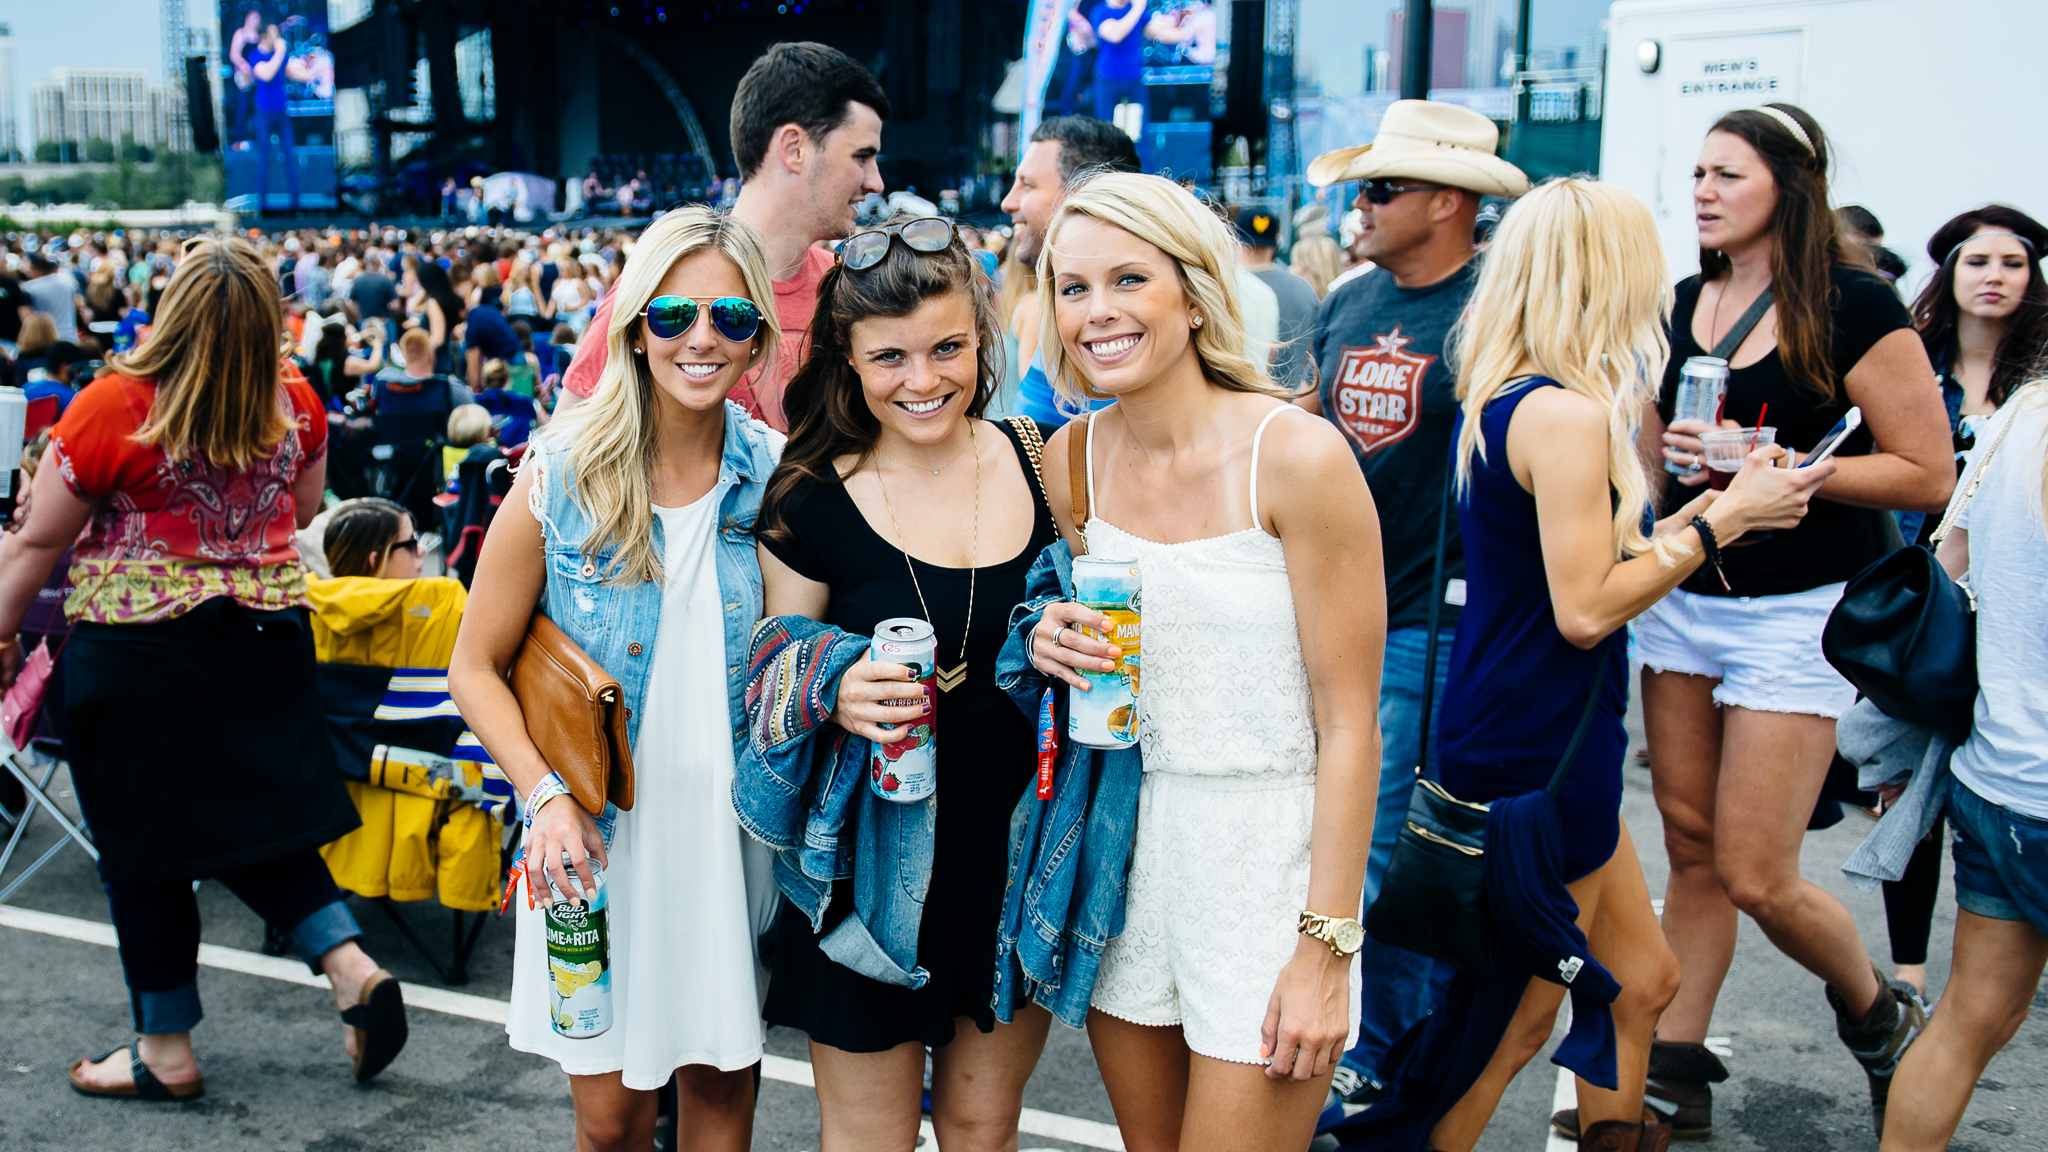 Windy City LakeShake Country Music Festival, June 20, 2015 at Northerly Island, Chicago.